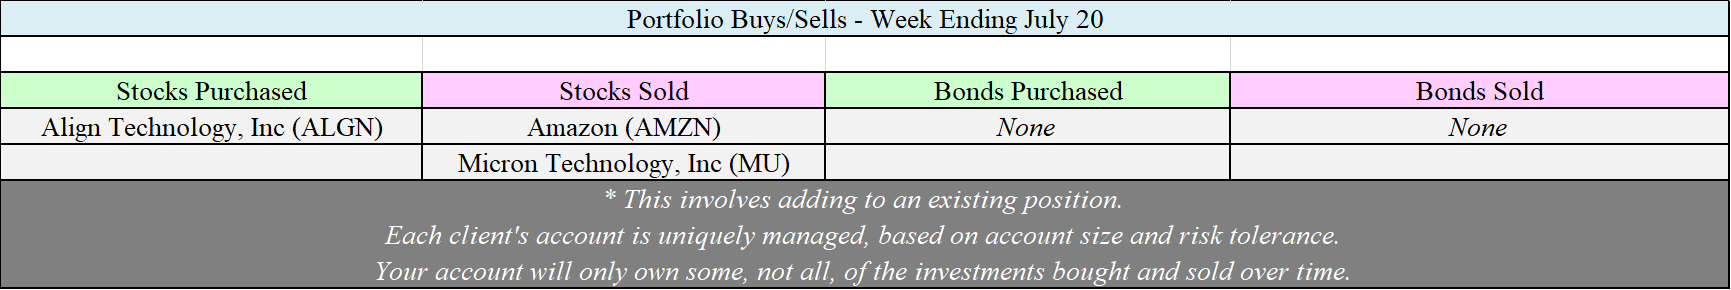 Allocation Changes - 07-20-18.png